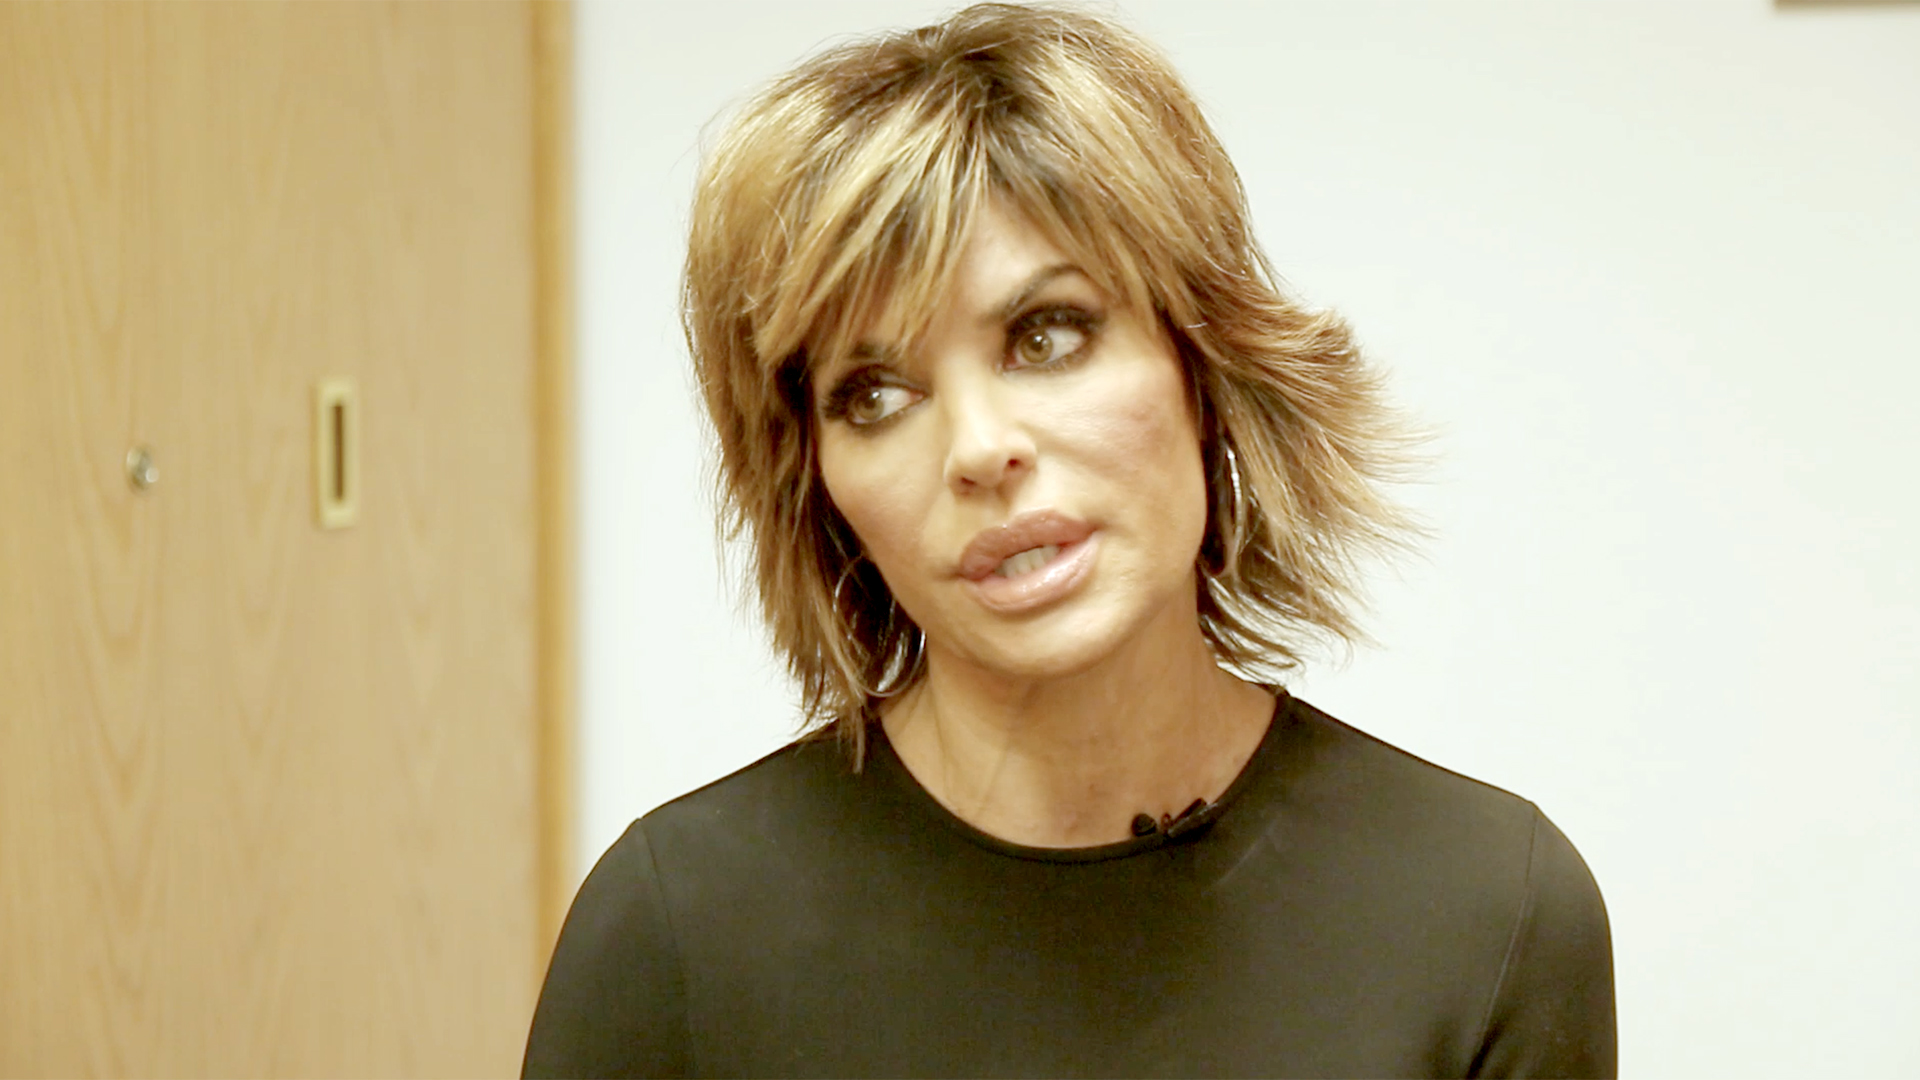 Lisa Rinna: I Take Responsibility For The Part I Have